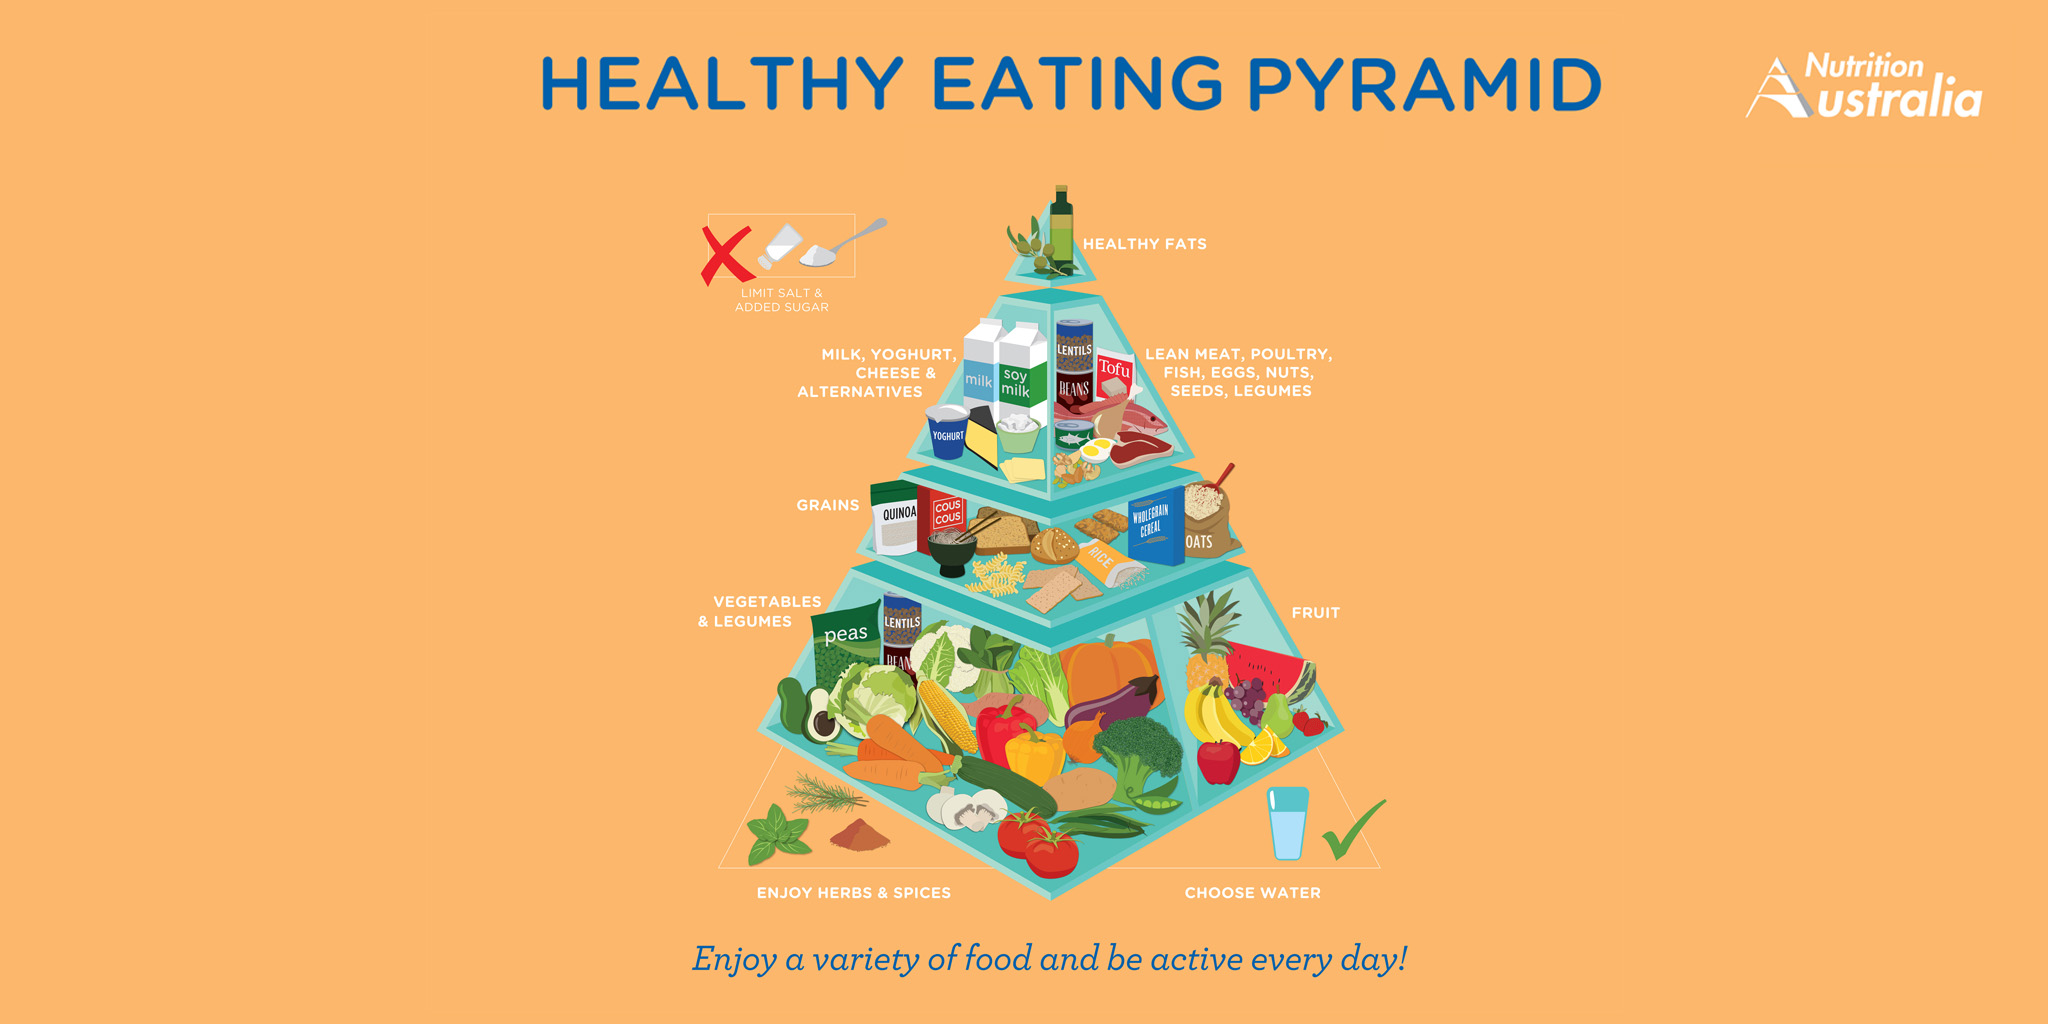 healthy eating pyramid The new pyramid is here, with a fresh look and targeted health messages about healthy eating.